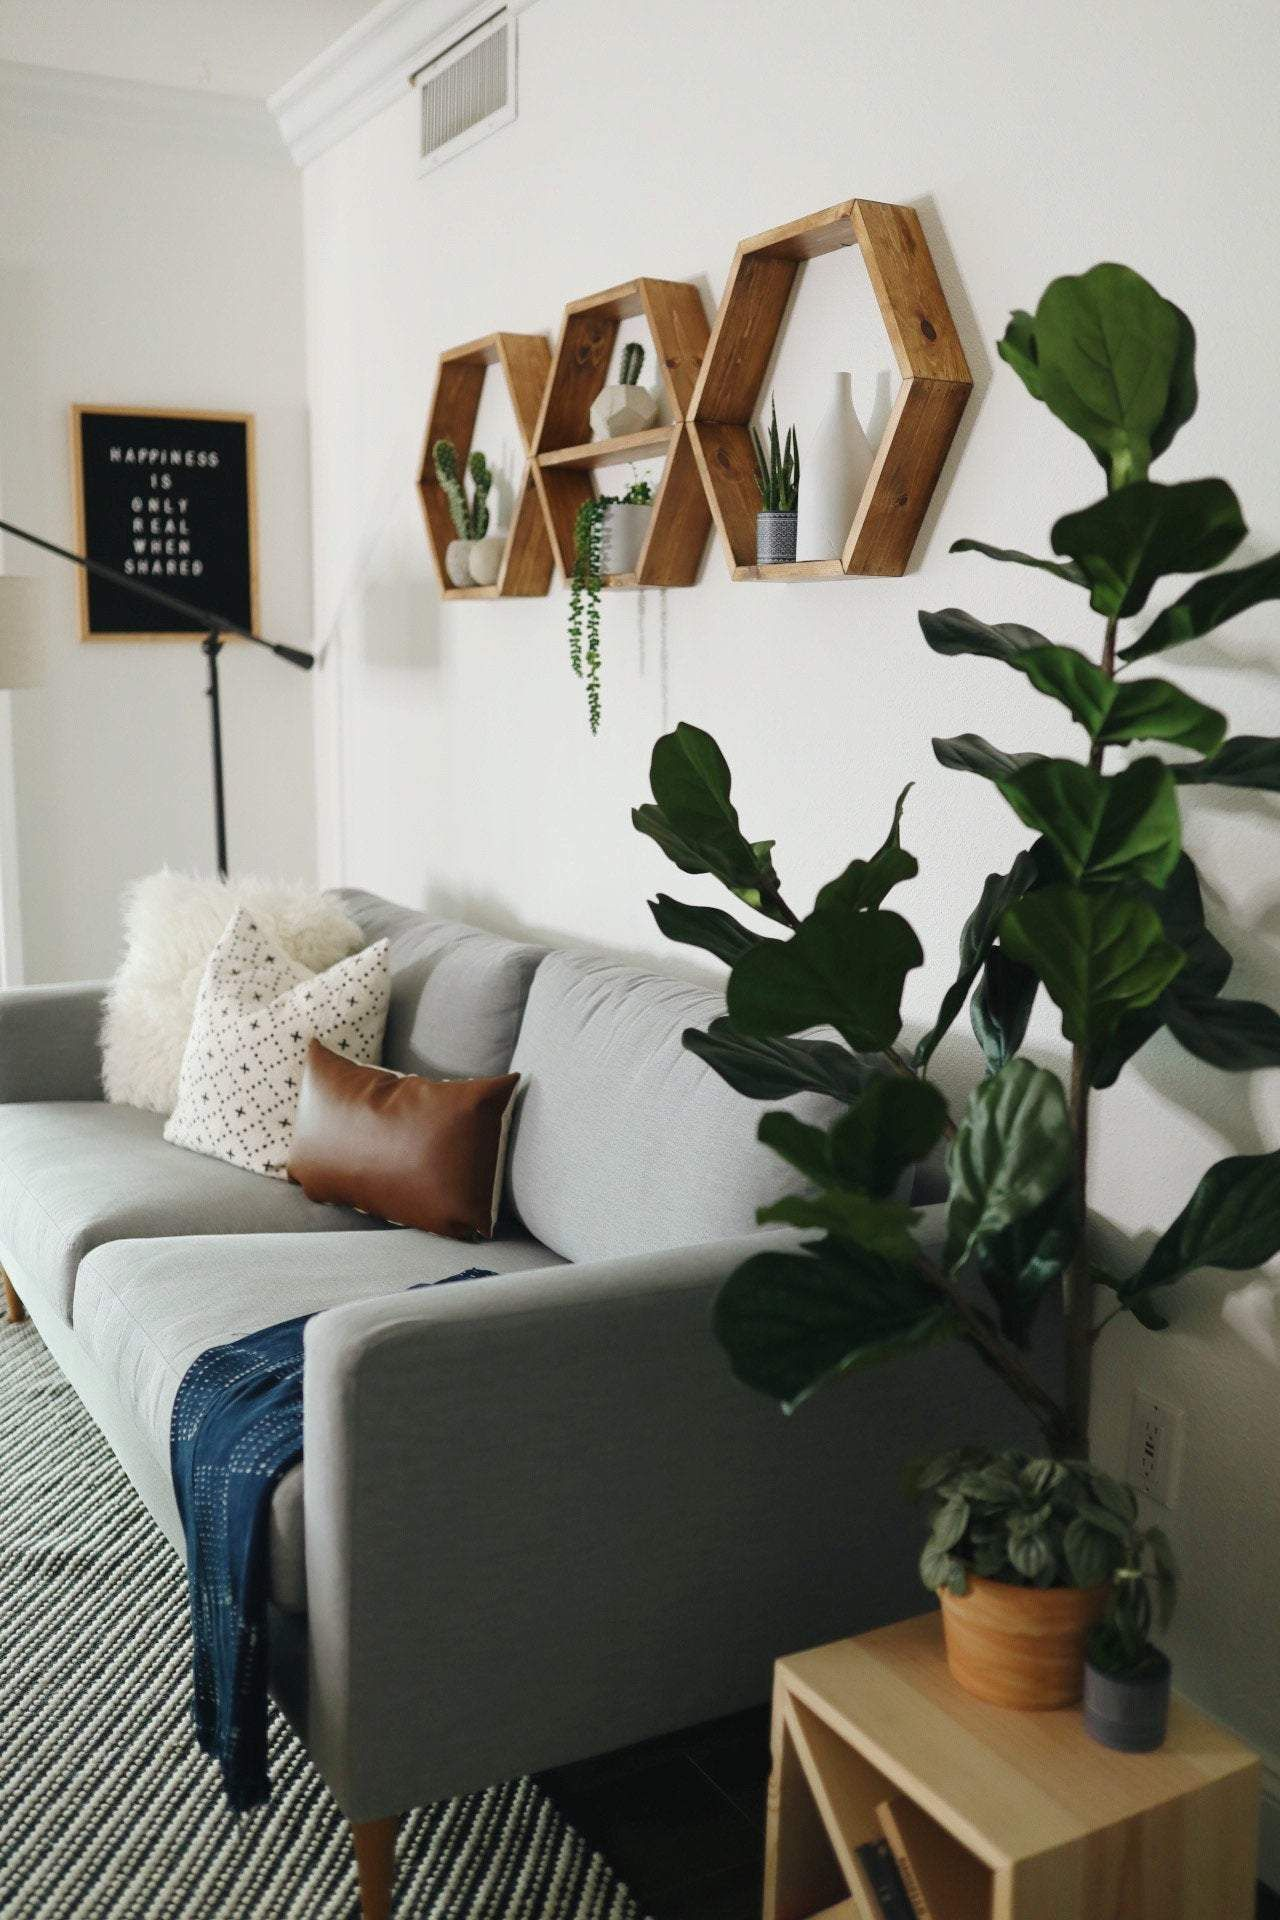 Ways To Style An Empty Wall In 2020 Above Couch Decor Living Room Shelves Couch Decor